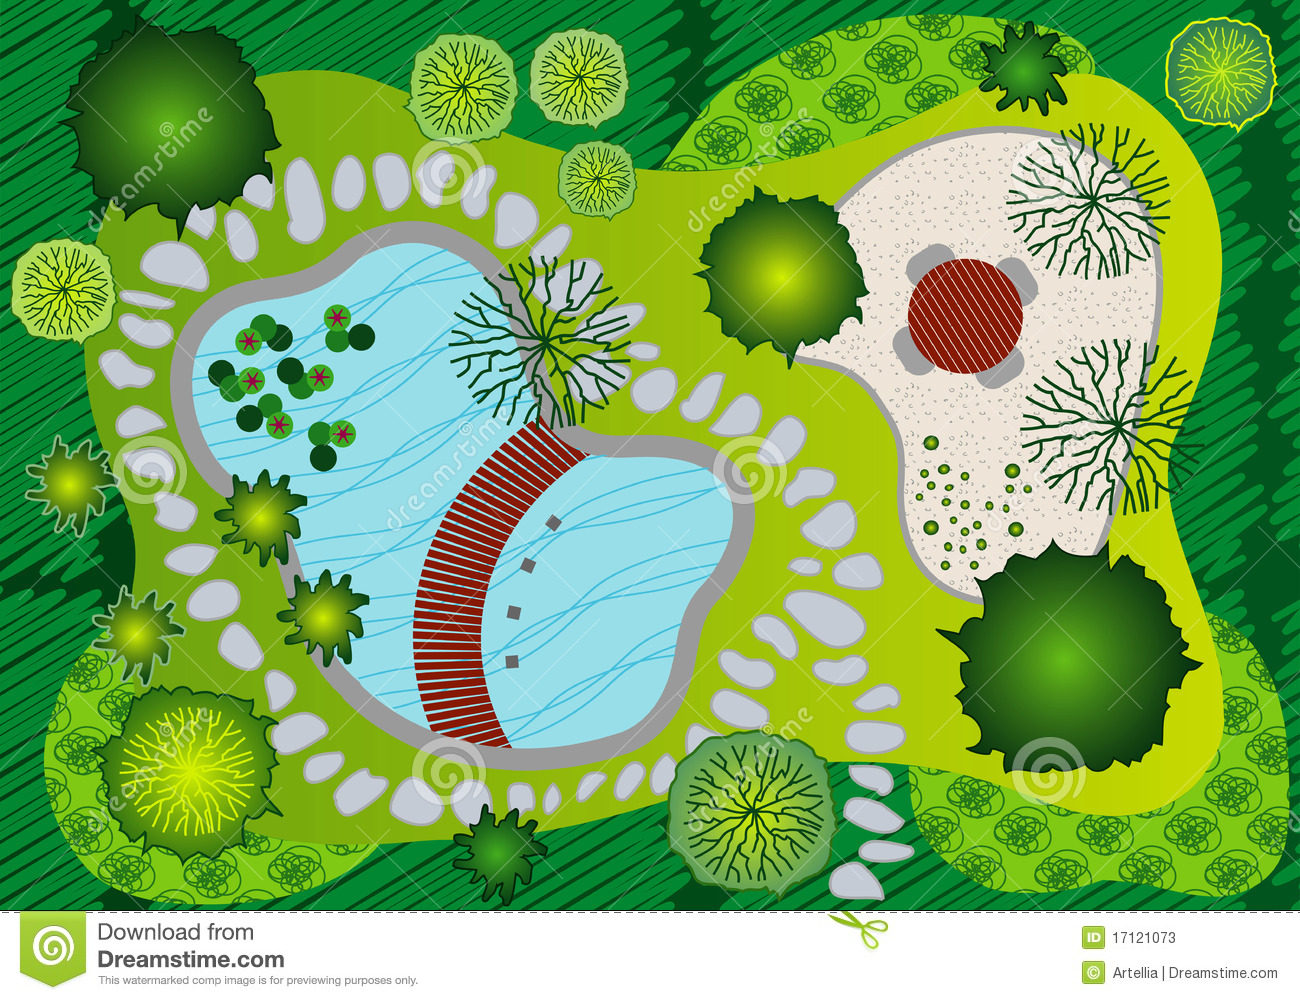 Plan landscape and garden design stock vector for Design my landscape